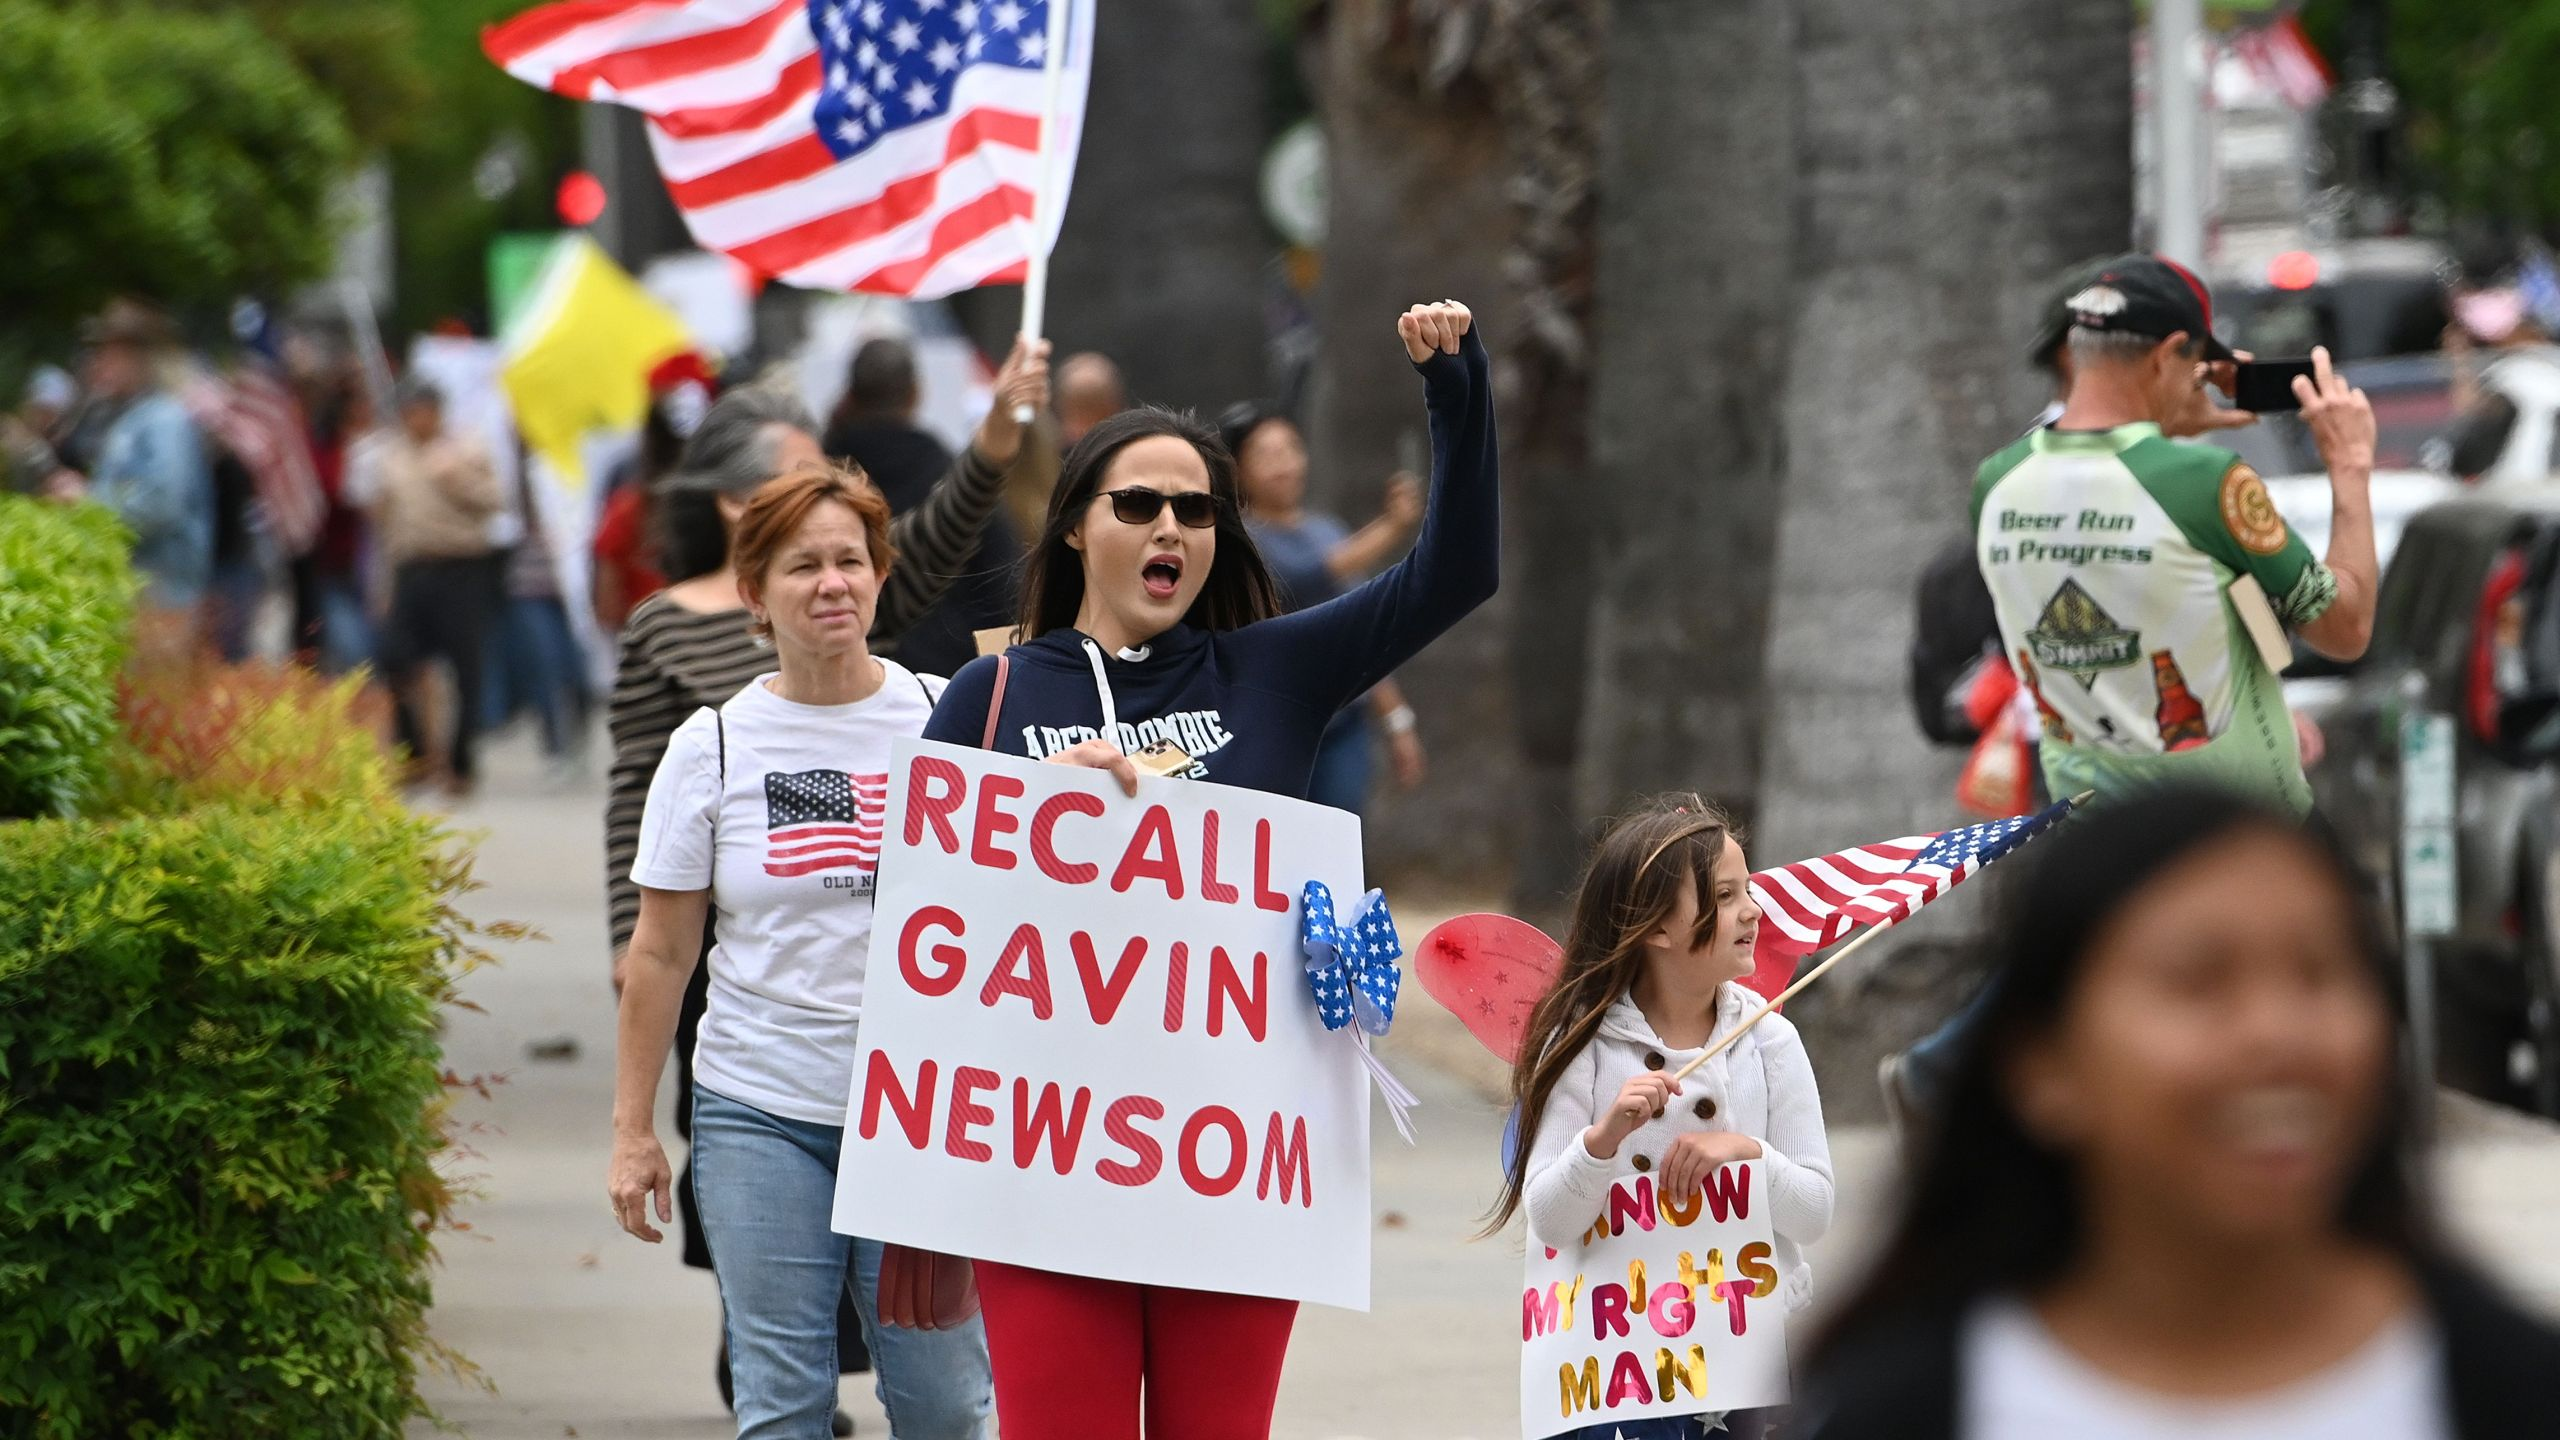 A woman shouts with a sign calling for the removal of California Gov. Gavin Newsom as hundreds of people gather to protest the lockdown in spite of shelter-in-place rules still being in effect at California's state capitol building in Sacramento, California on April 20, 2020. (JOSH EDELSON/AFP via Getty Images)